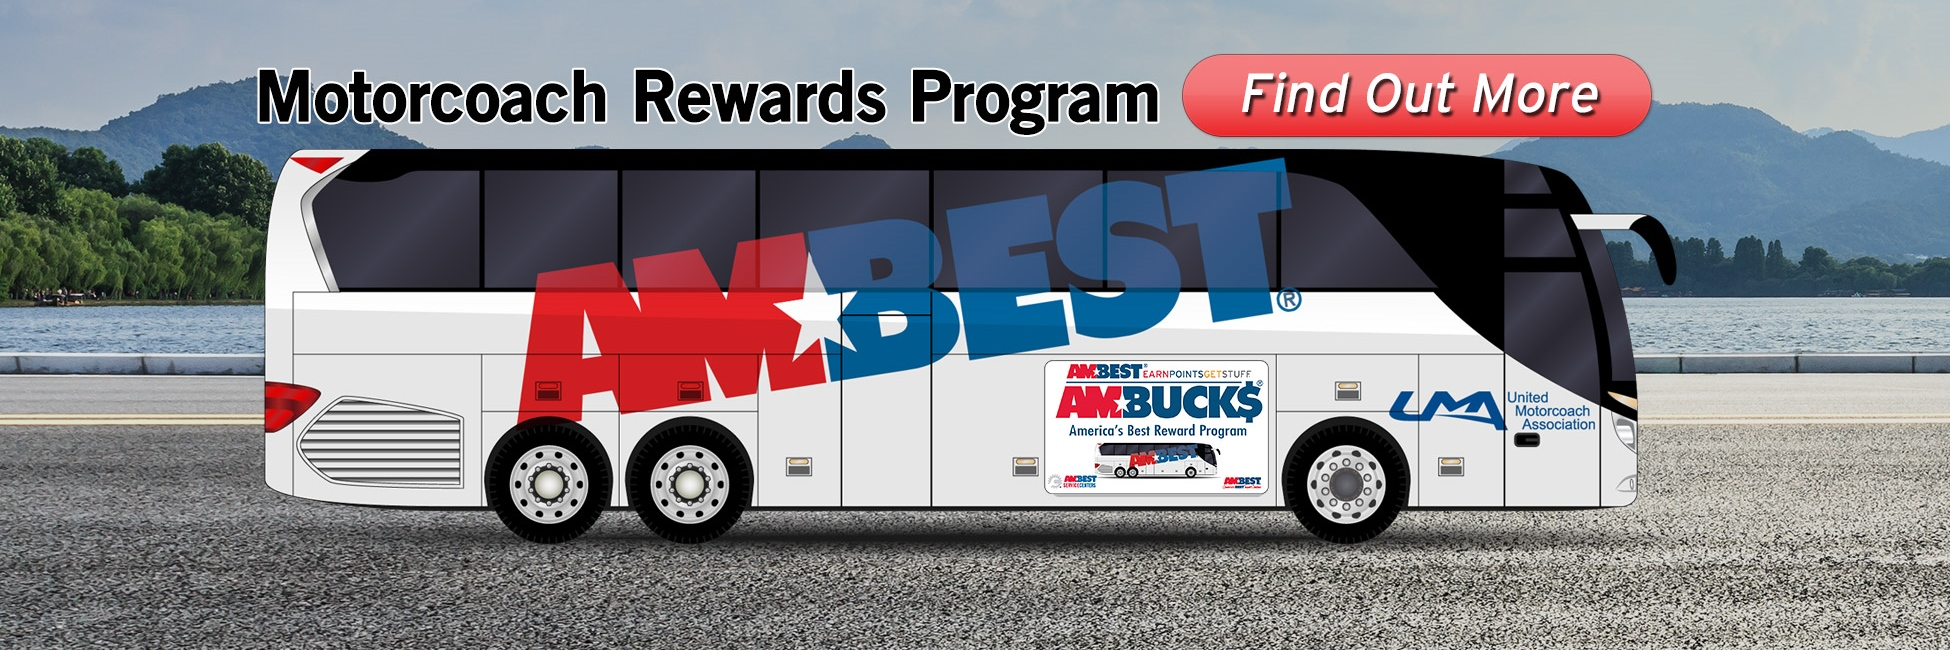 Motorcoach Rewards